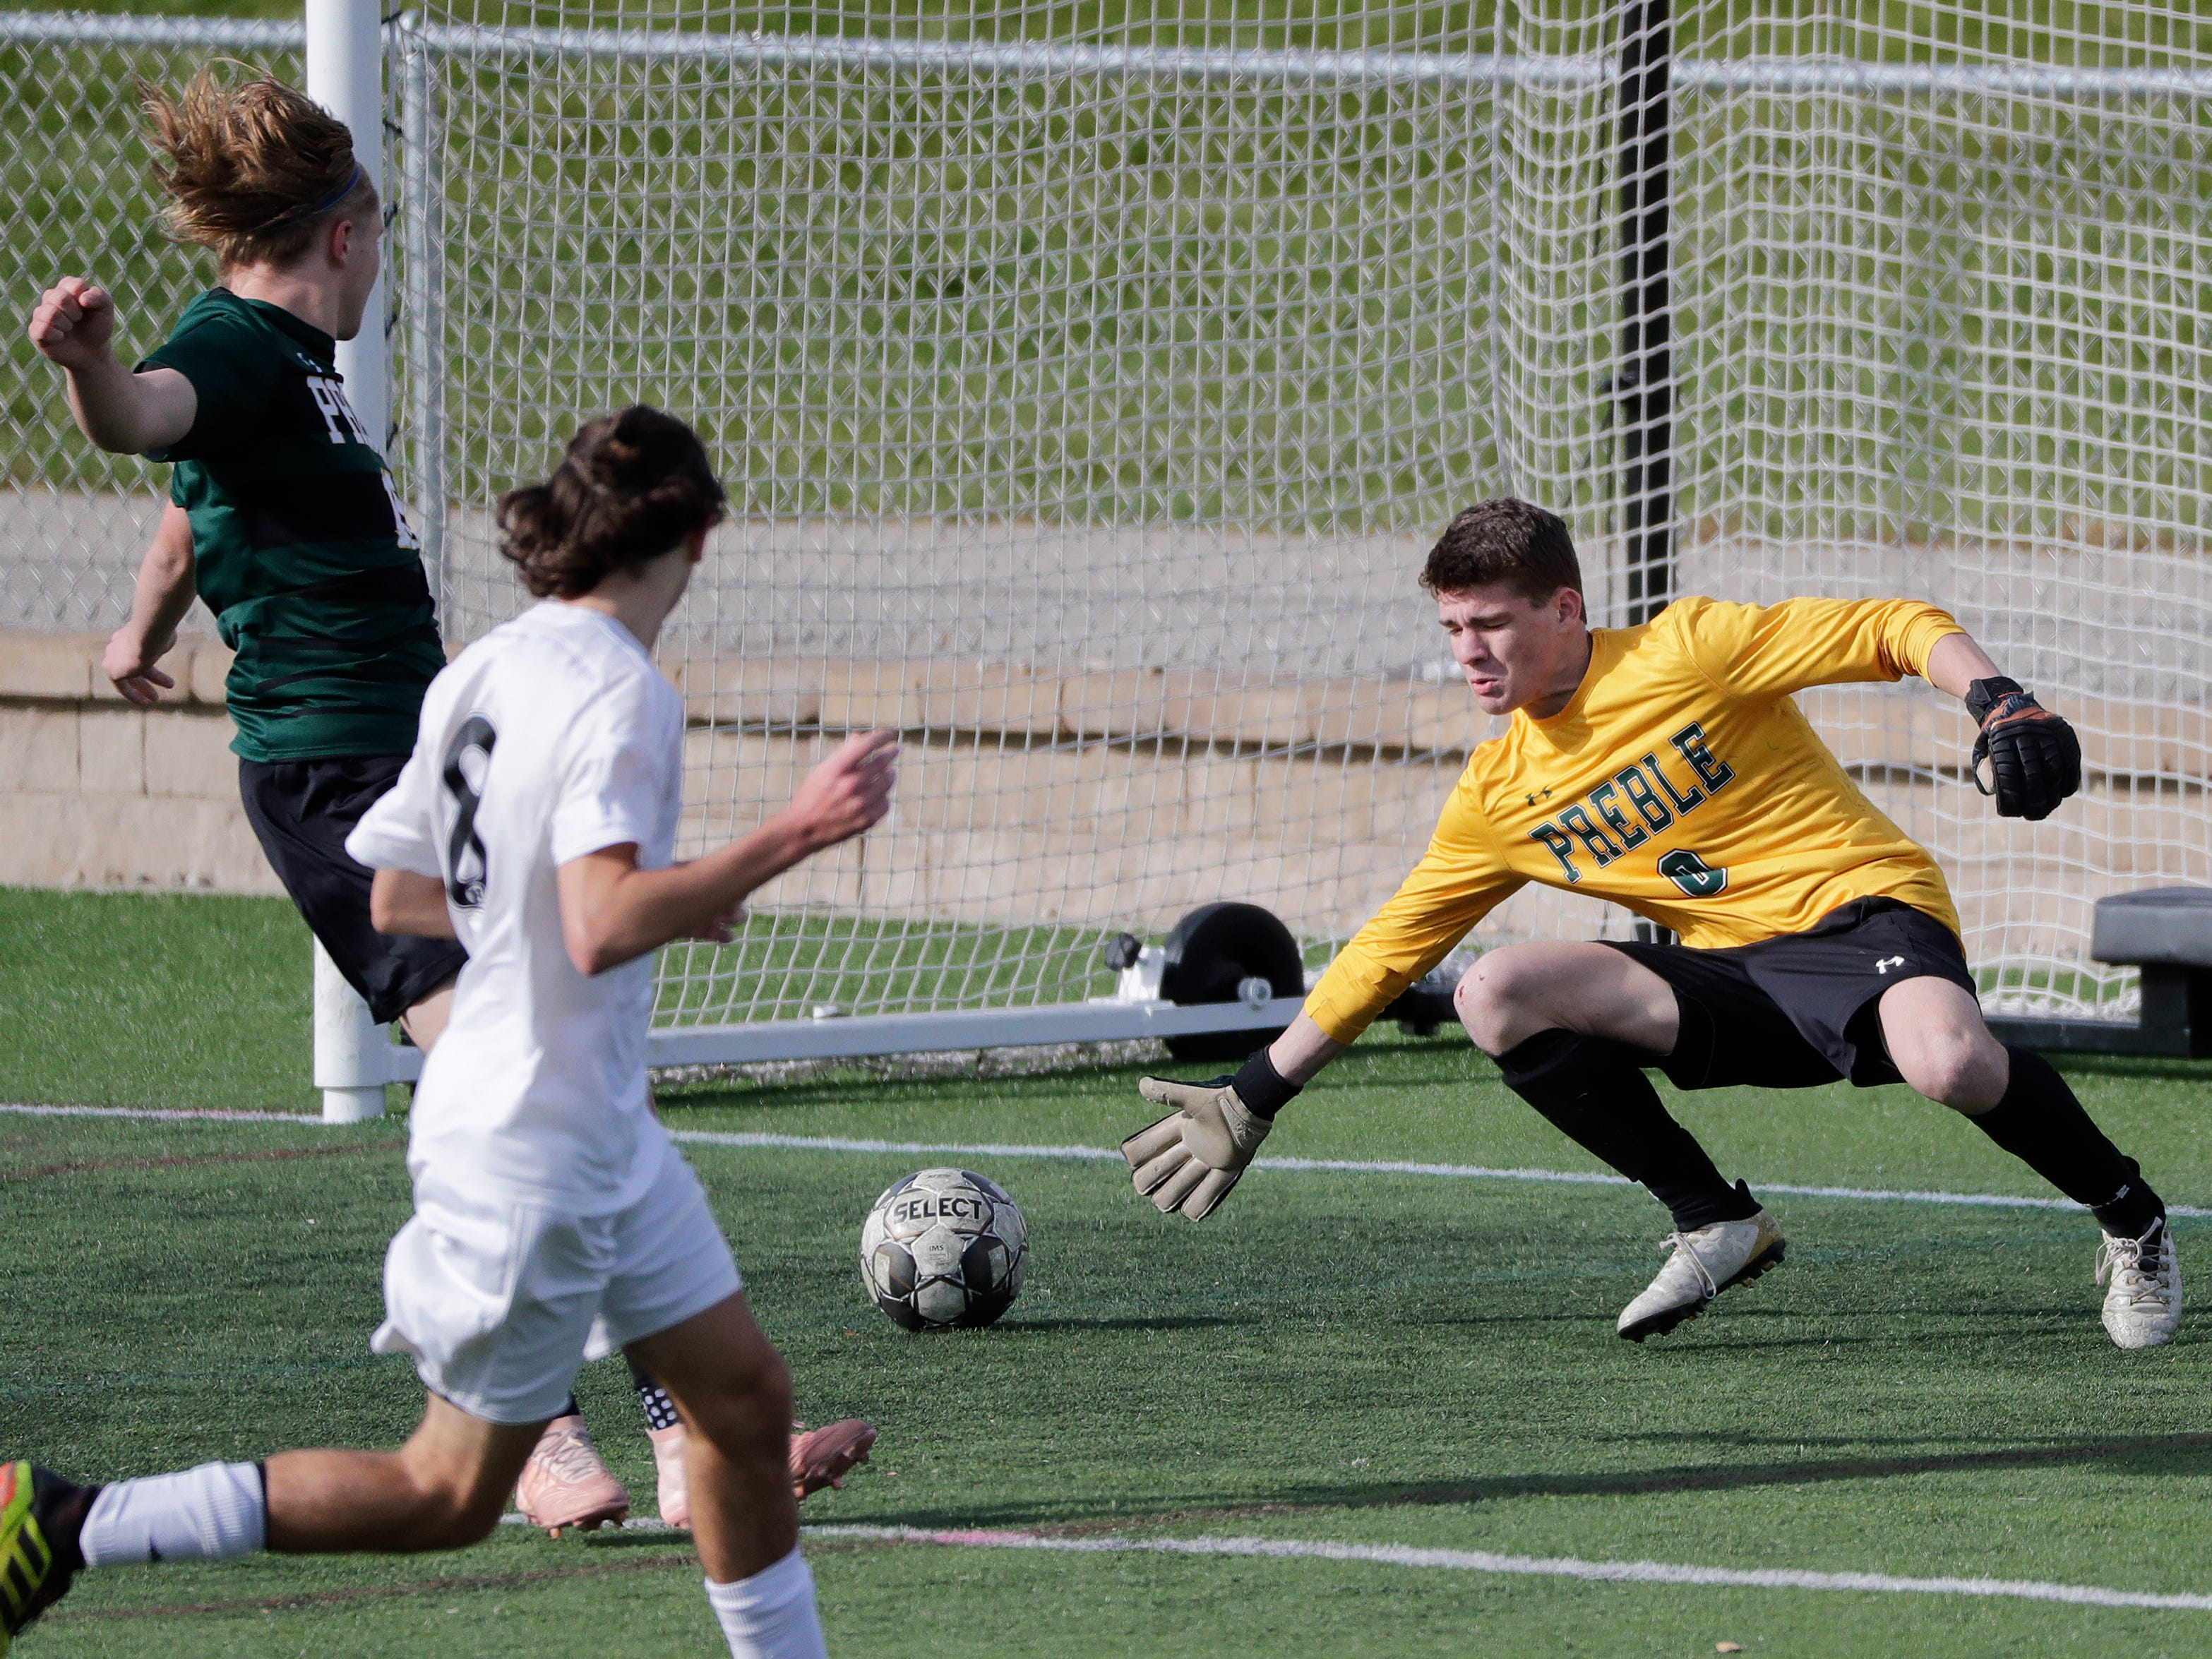 Green Bay Preble High School's goalie Noah Conard (0) is scored on by Hamilton High School's Zach Wilcox (8) in the first half during their WIAA Division 1 state semifinal boys soccer game Friday, November 2, 2018, at Uihlein Soccer Park in Milwaukee, Wis.